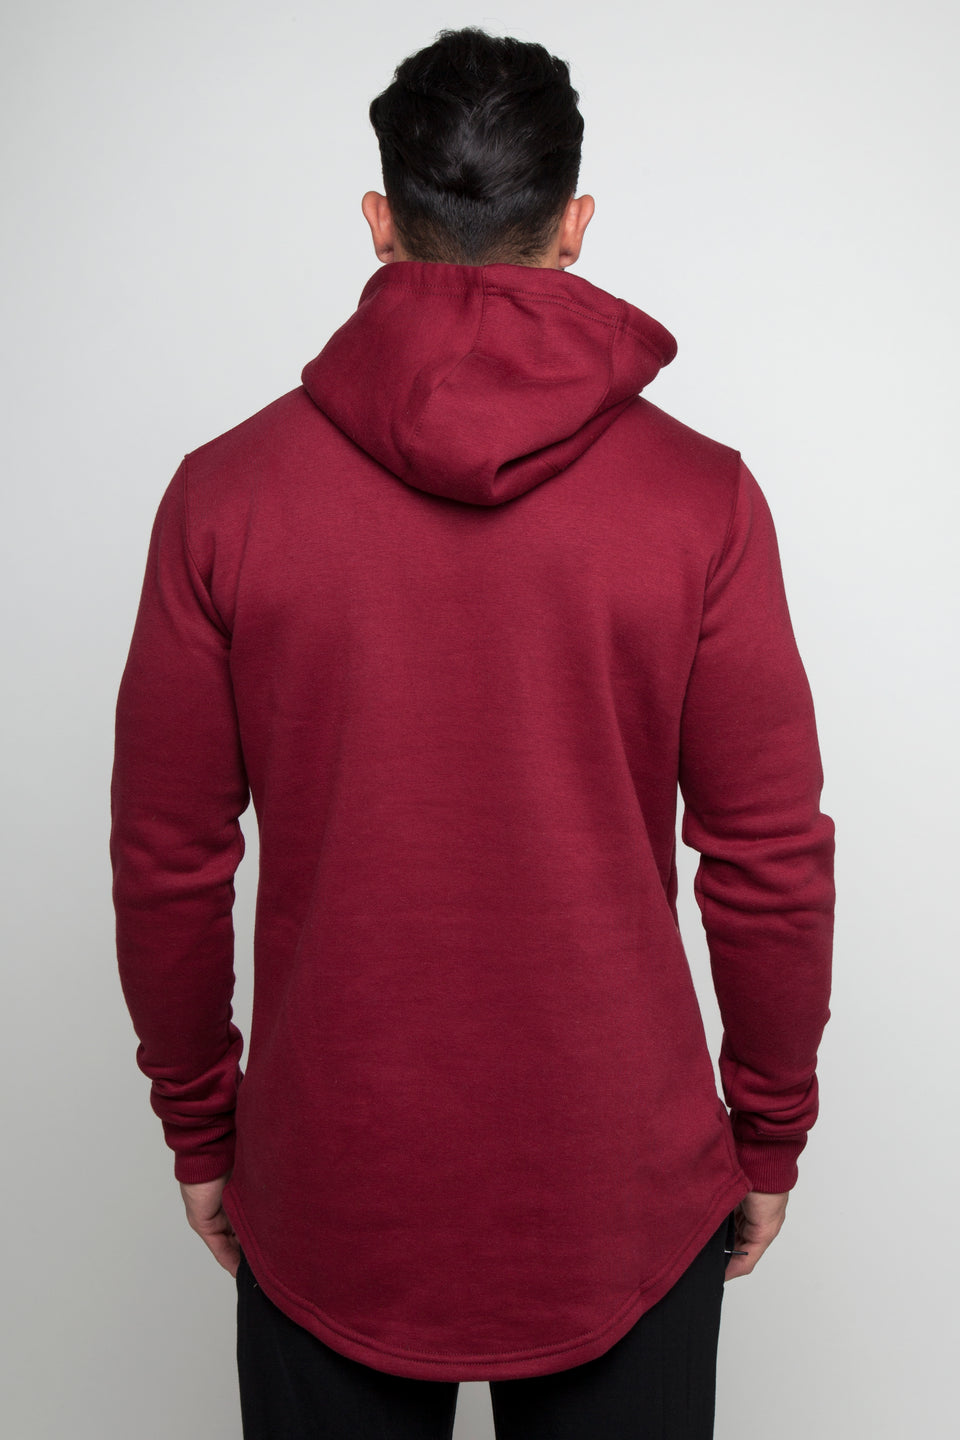 Vypex creed fitted mens gym hoodie in burgundy red